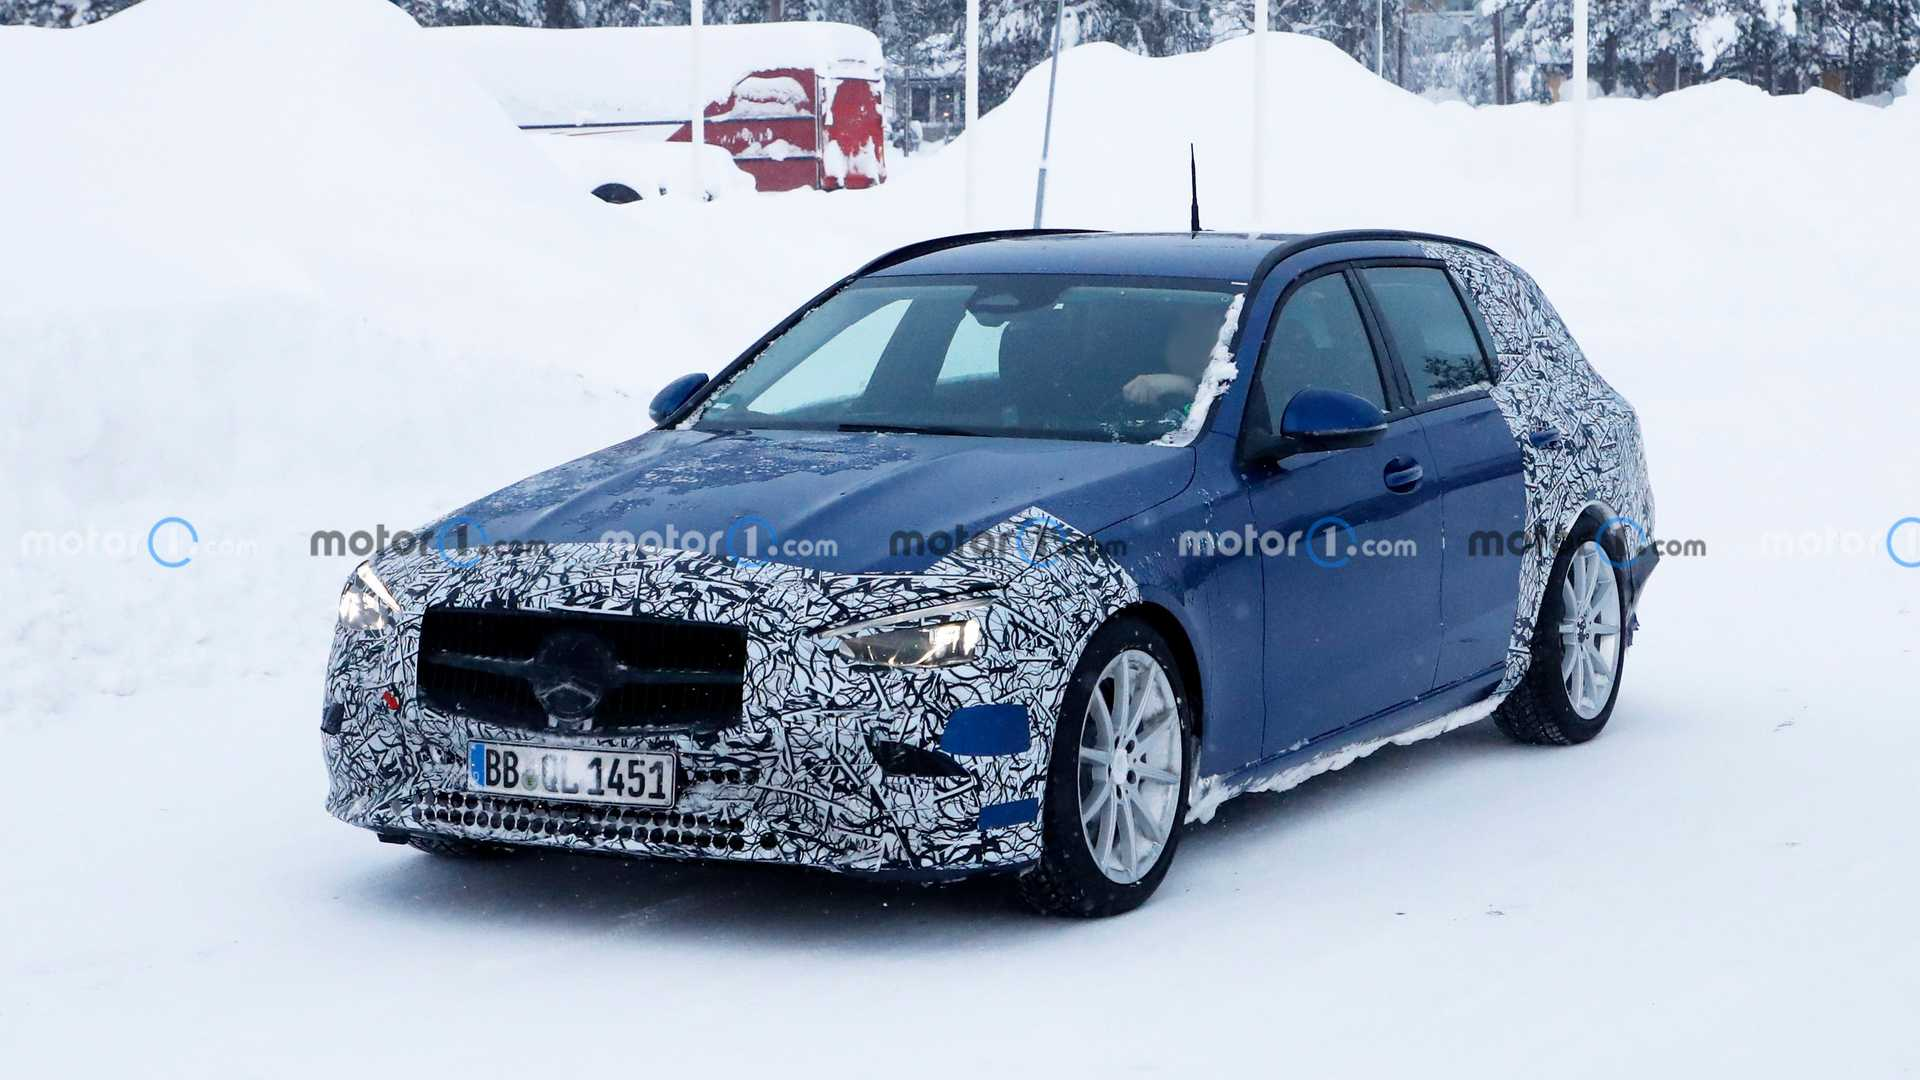 As the international premiere of the new Mercedes C-Class draws near, the automaker has begun undressing its test vehicles to show more naked body. These two wagons are a good example of what to expect.